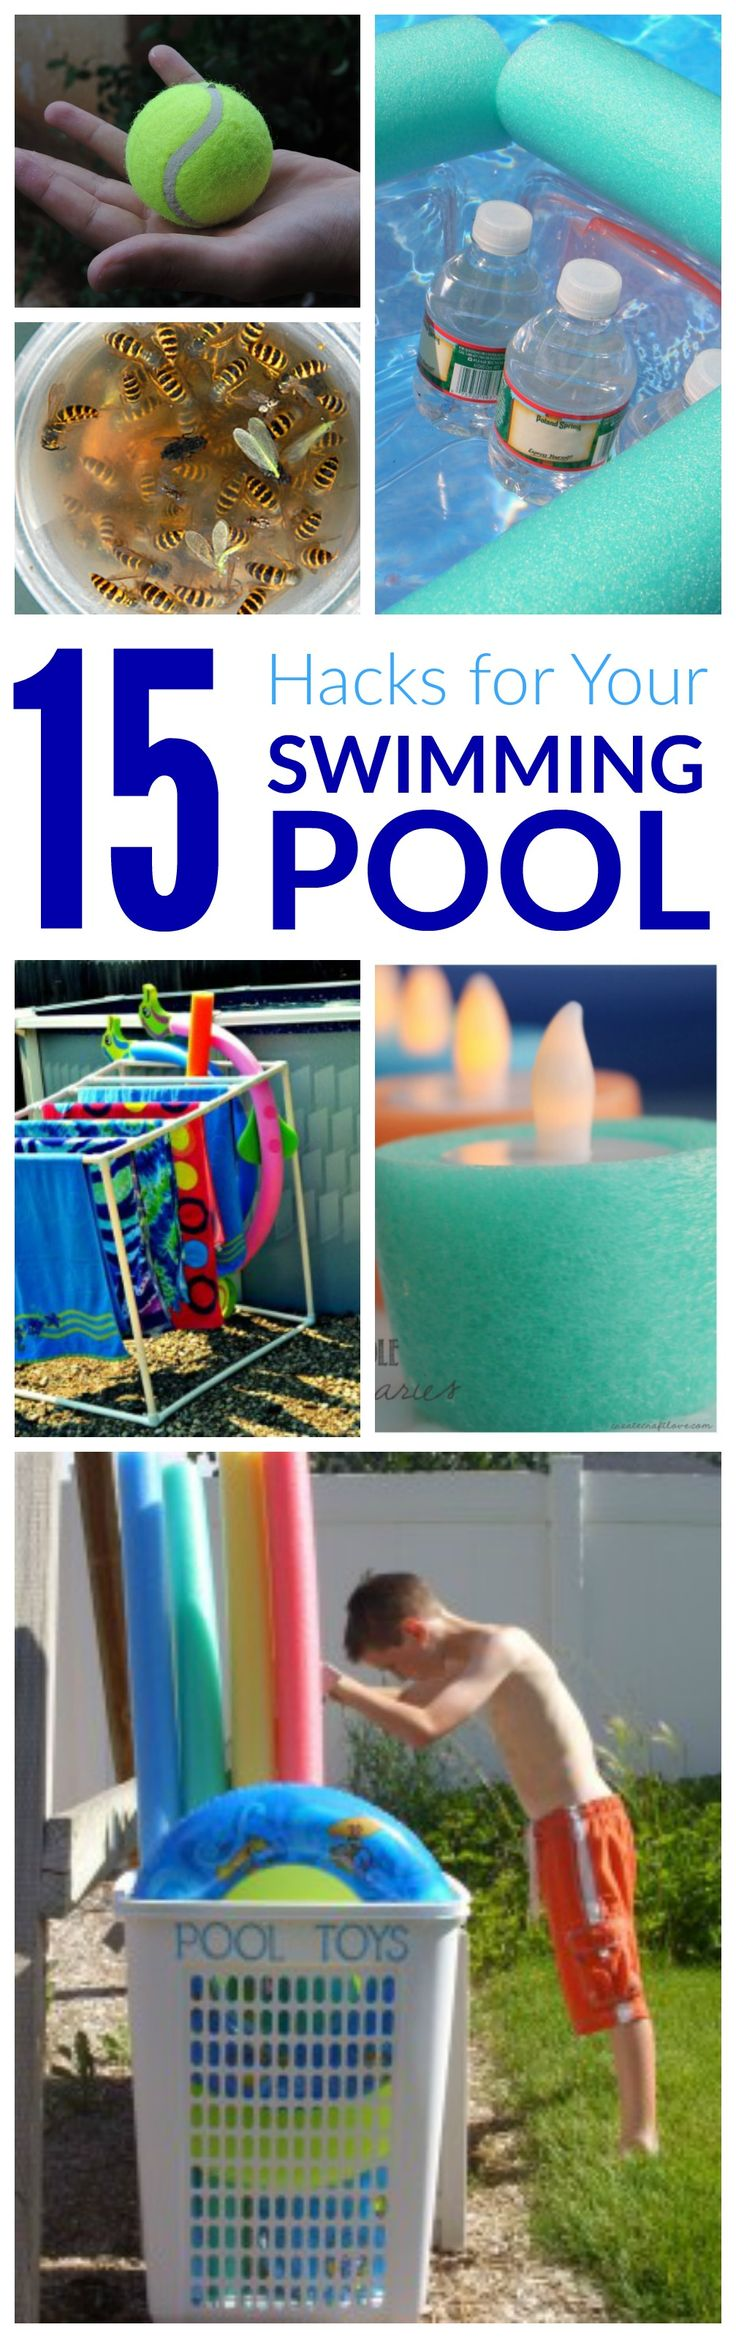 28736 best images about thrifty tips tricks on pinterest - Best way to finance a swimming pool ...